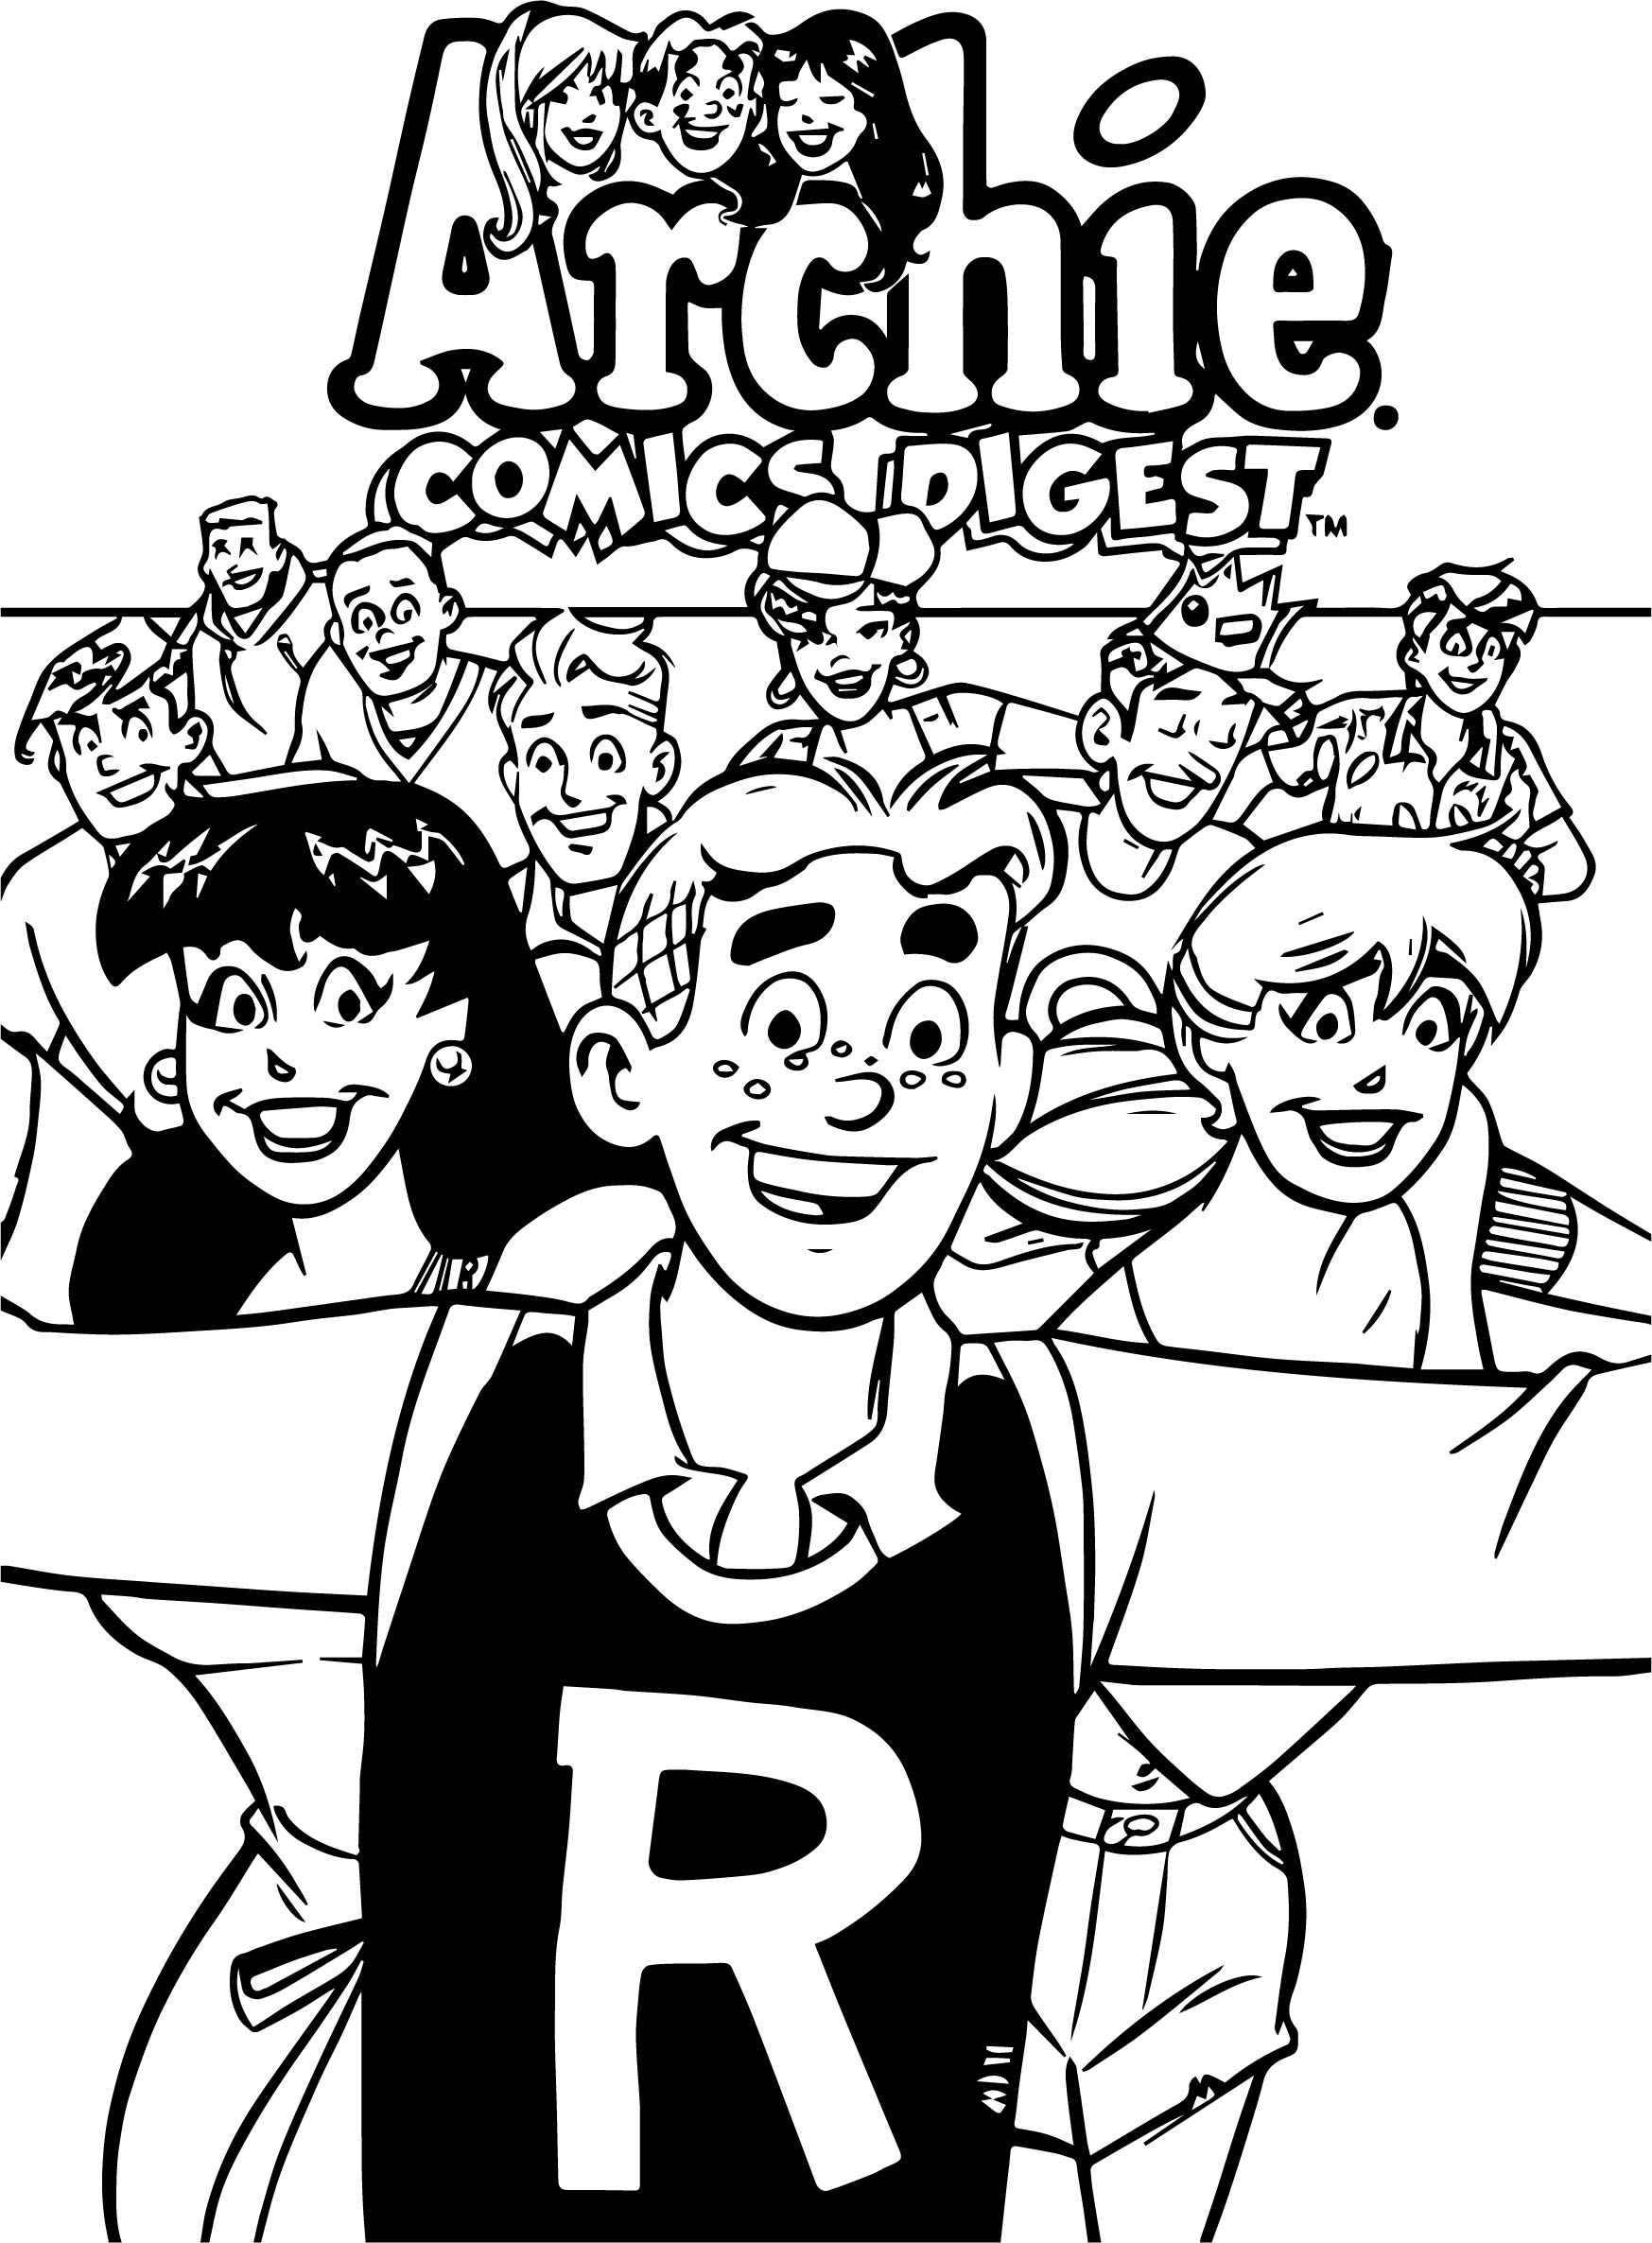 Running Archie Comics Coloring Page